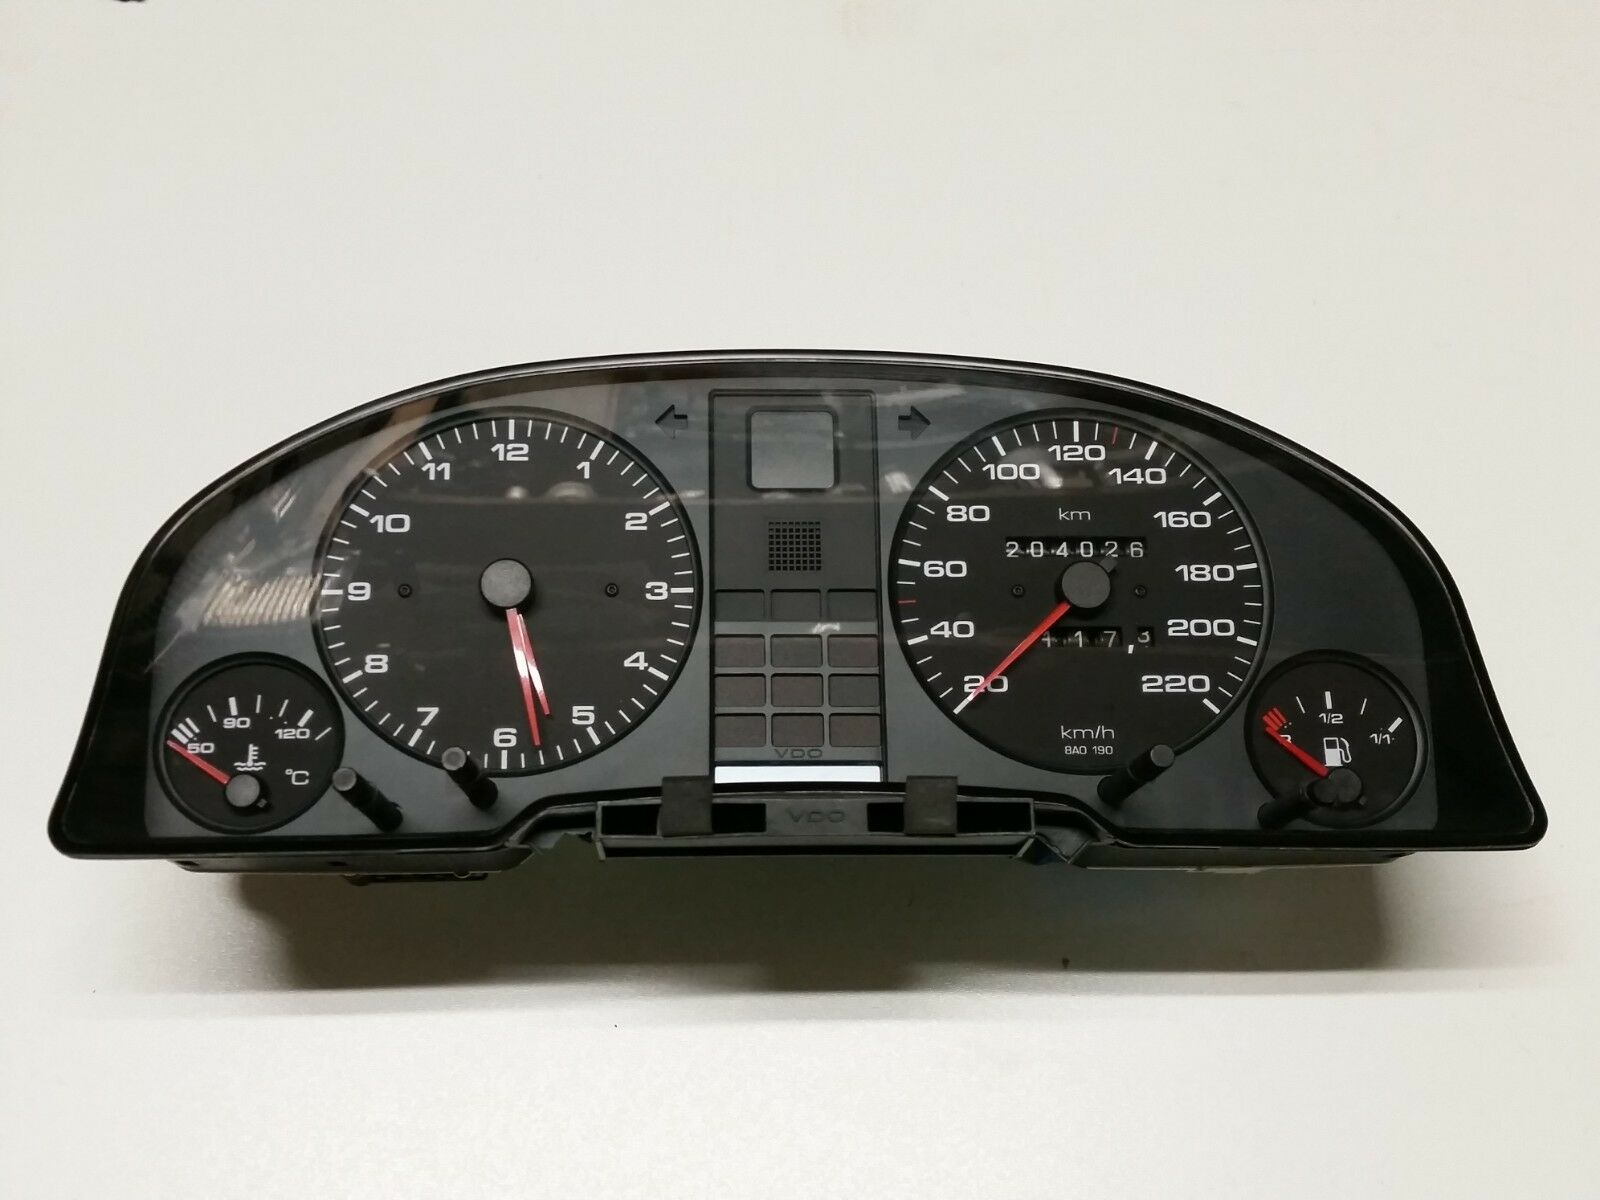 Audi 80 B4 2.0 petrol automatic gearbox instrument cluster 8A0919033CA